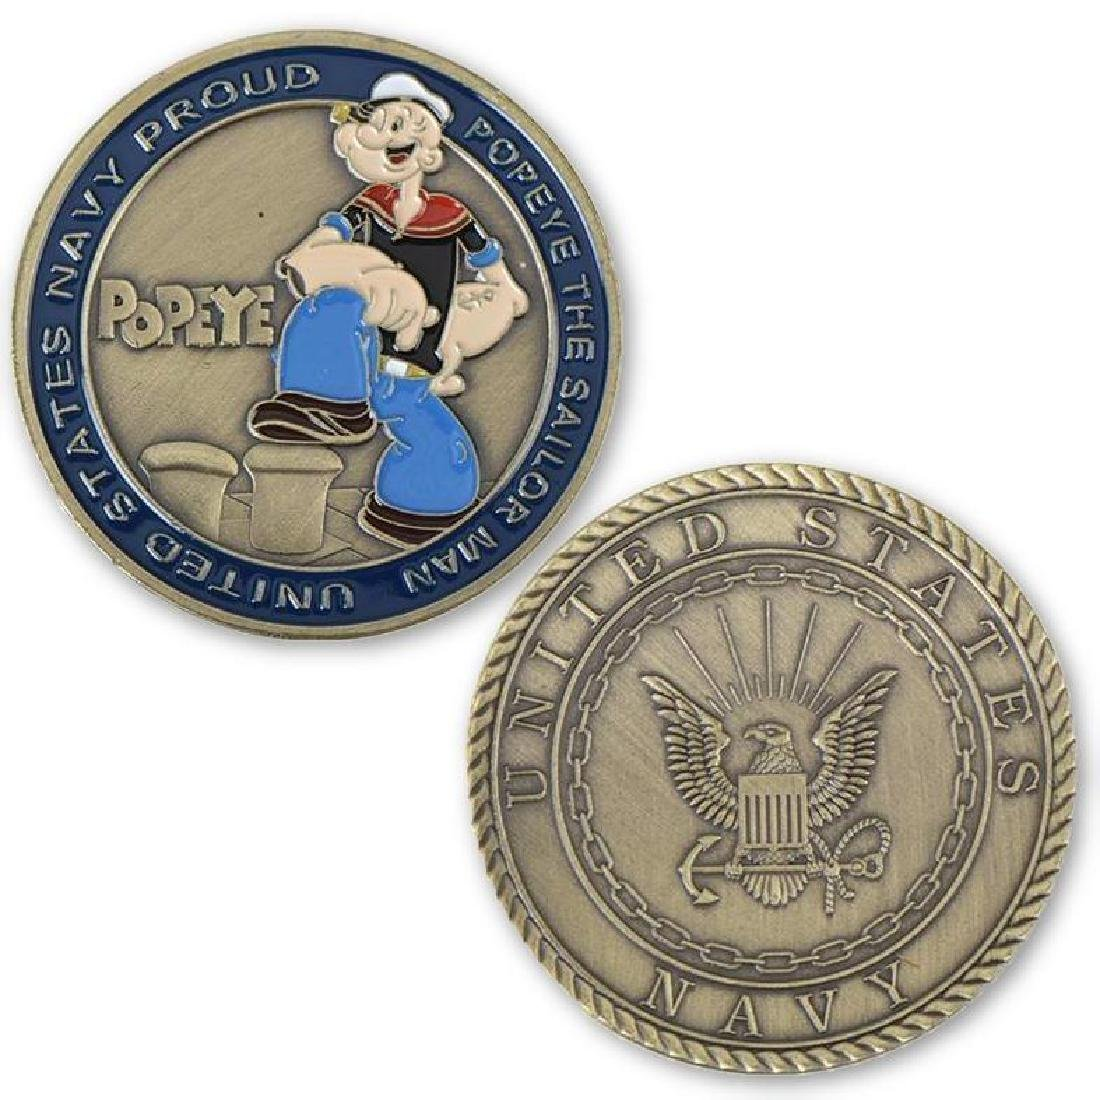 USA Navy Popeye Colored Challenge Coin